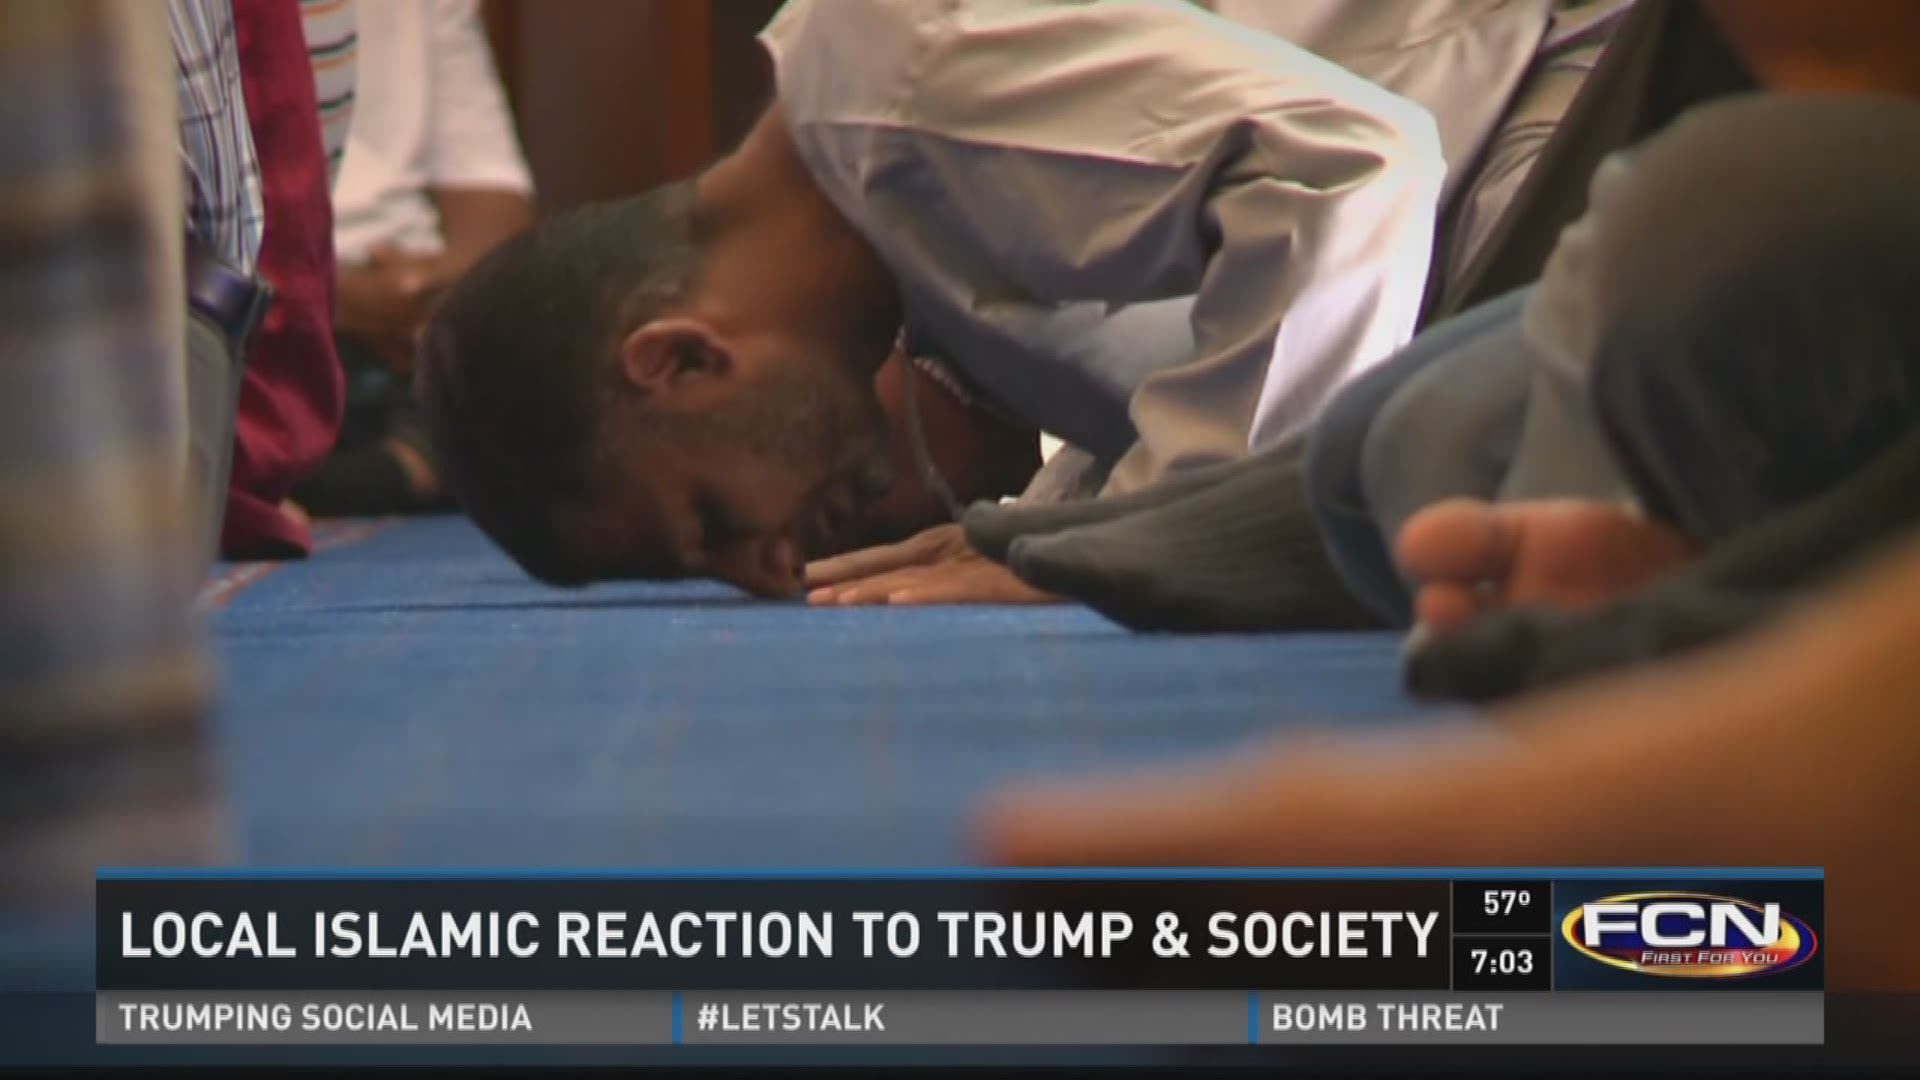 Local Islamic reaction to Trump and society